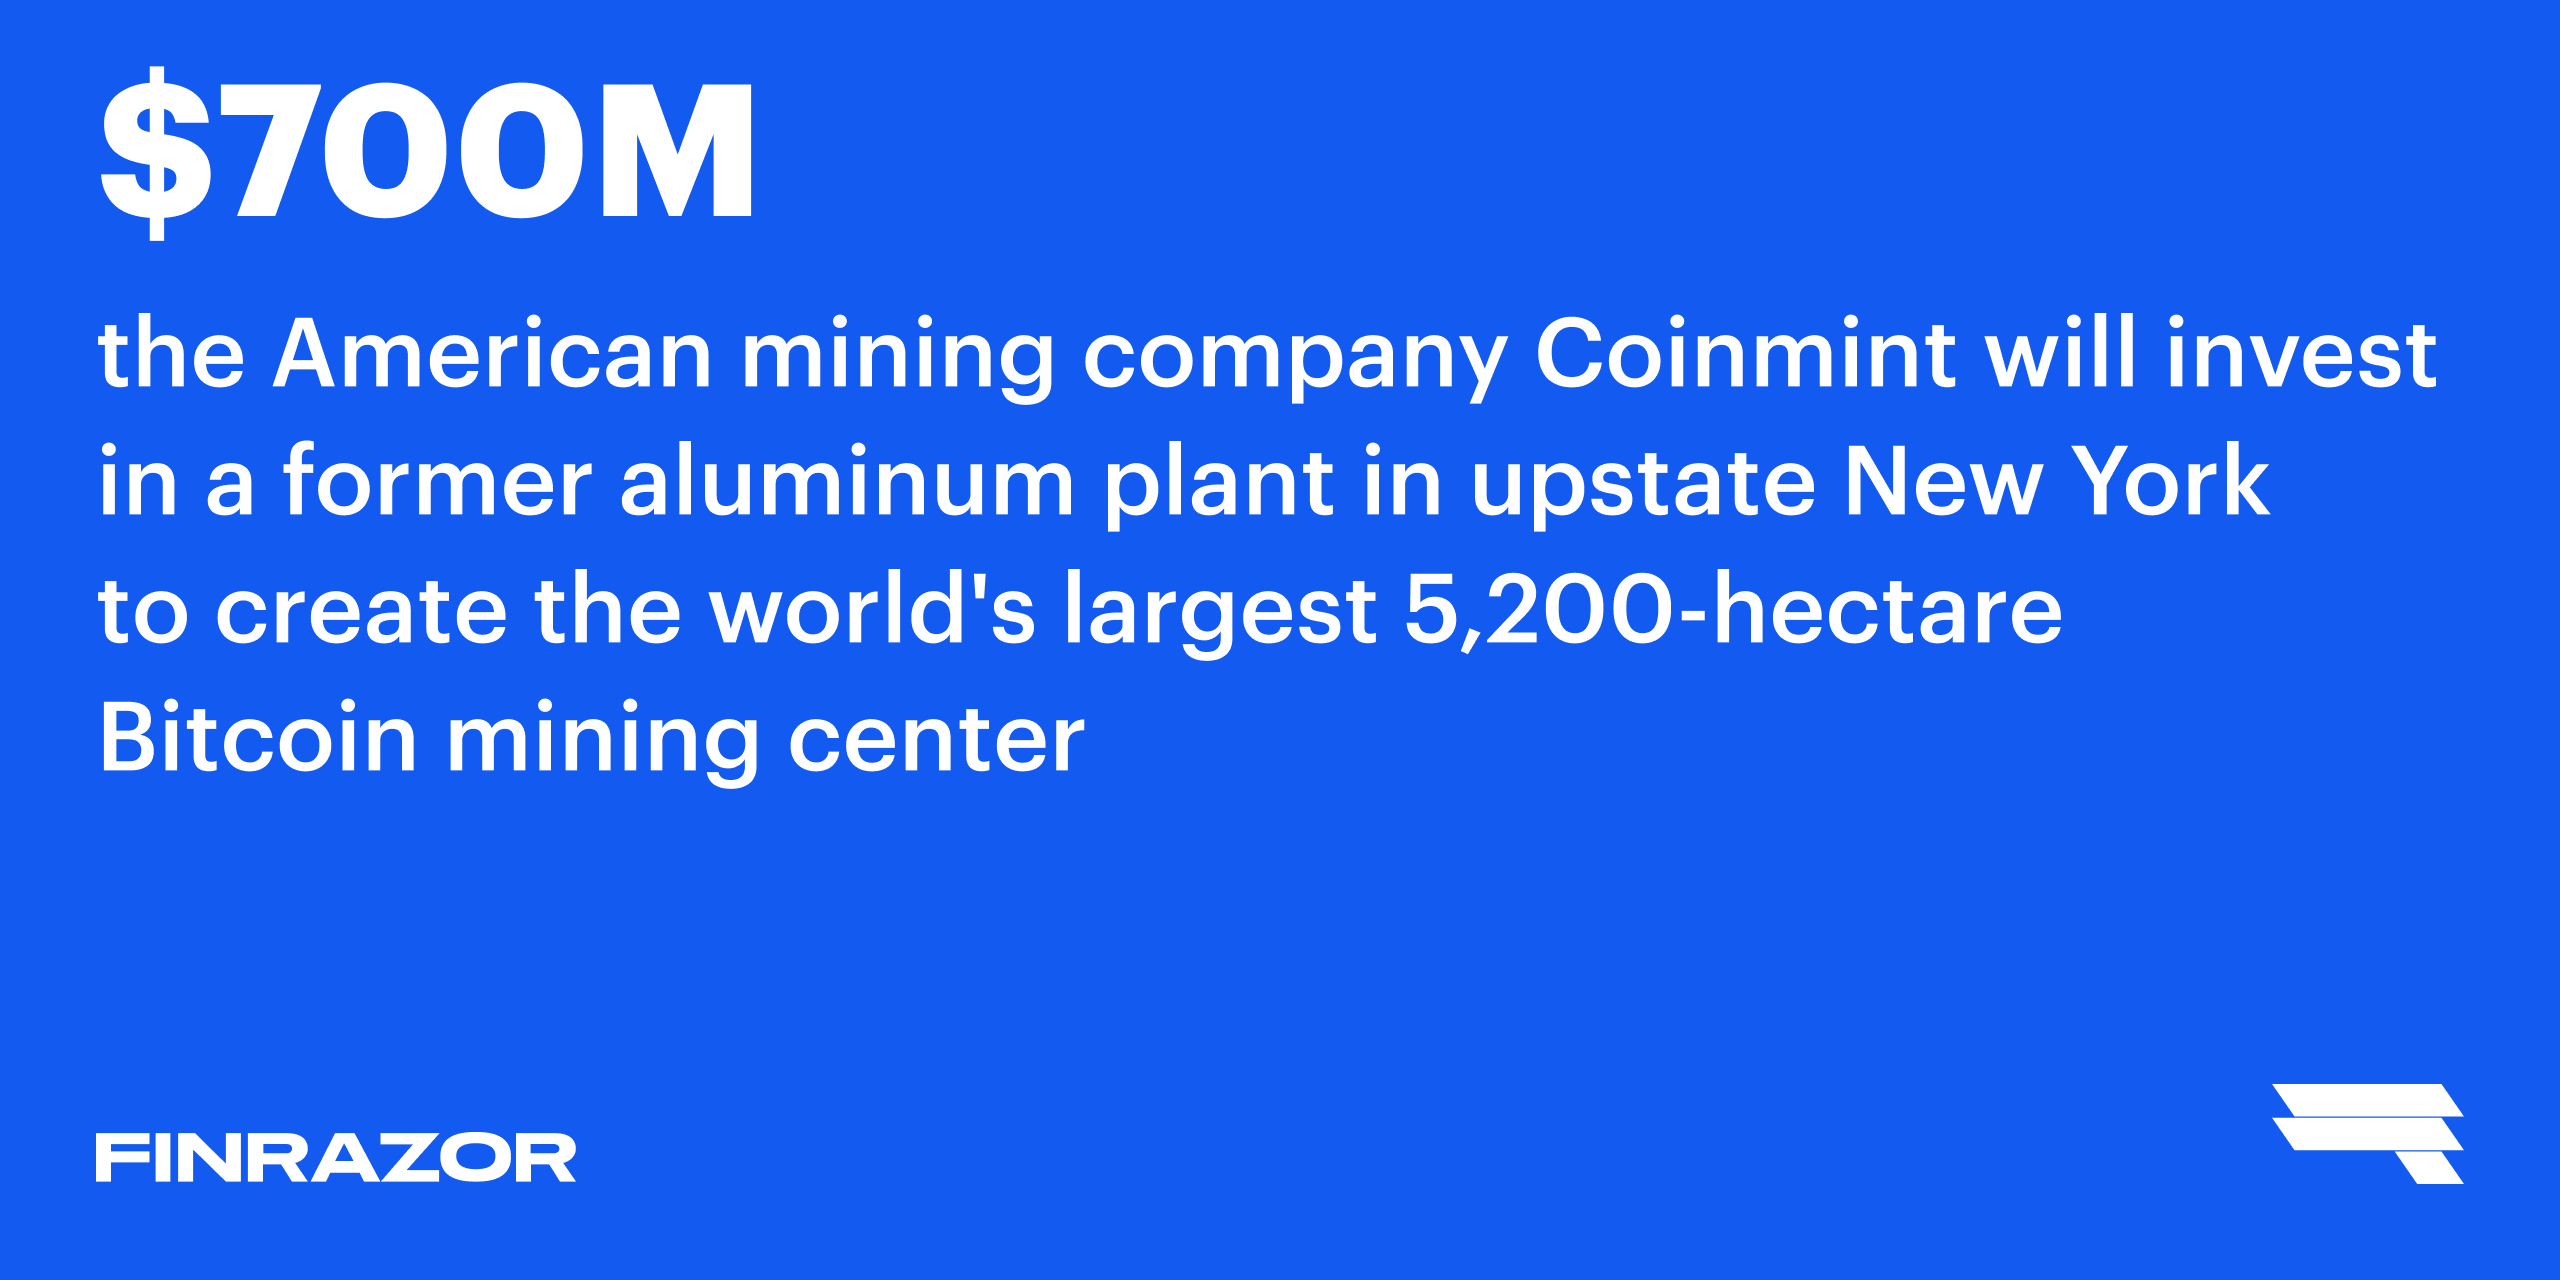 New York will become the mining capital of the world